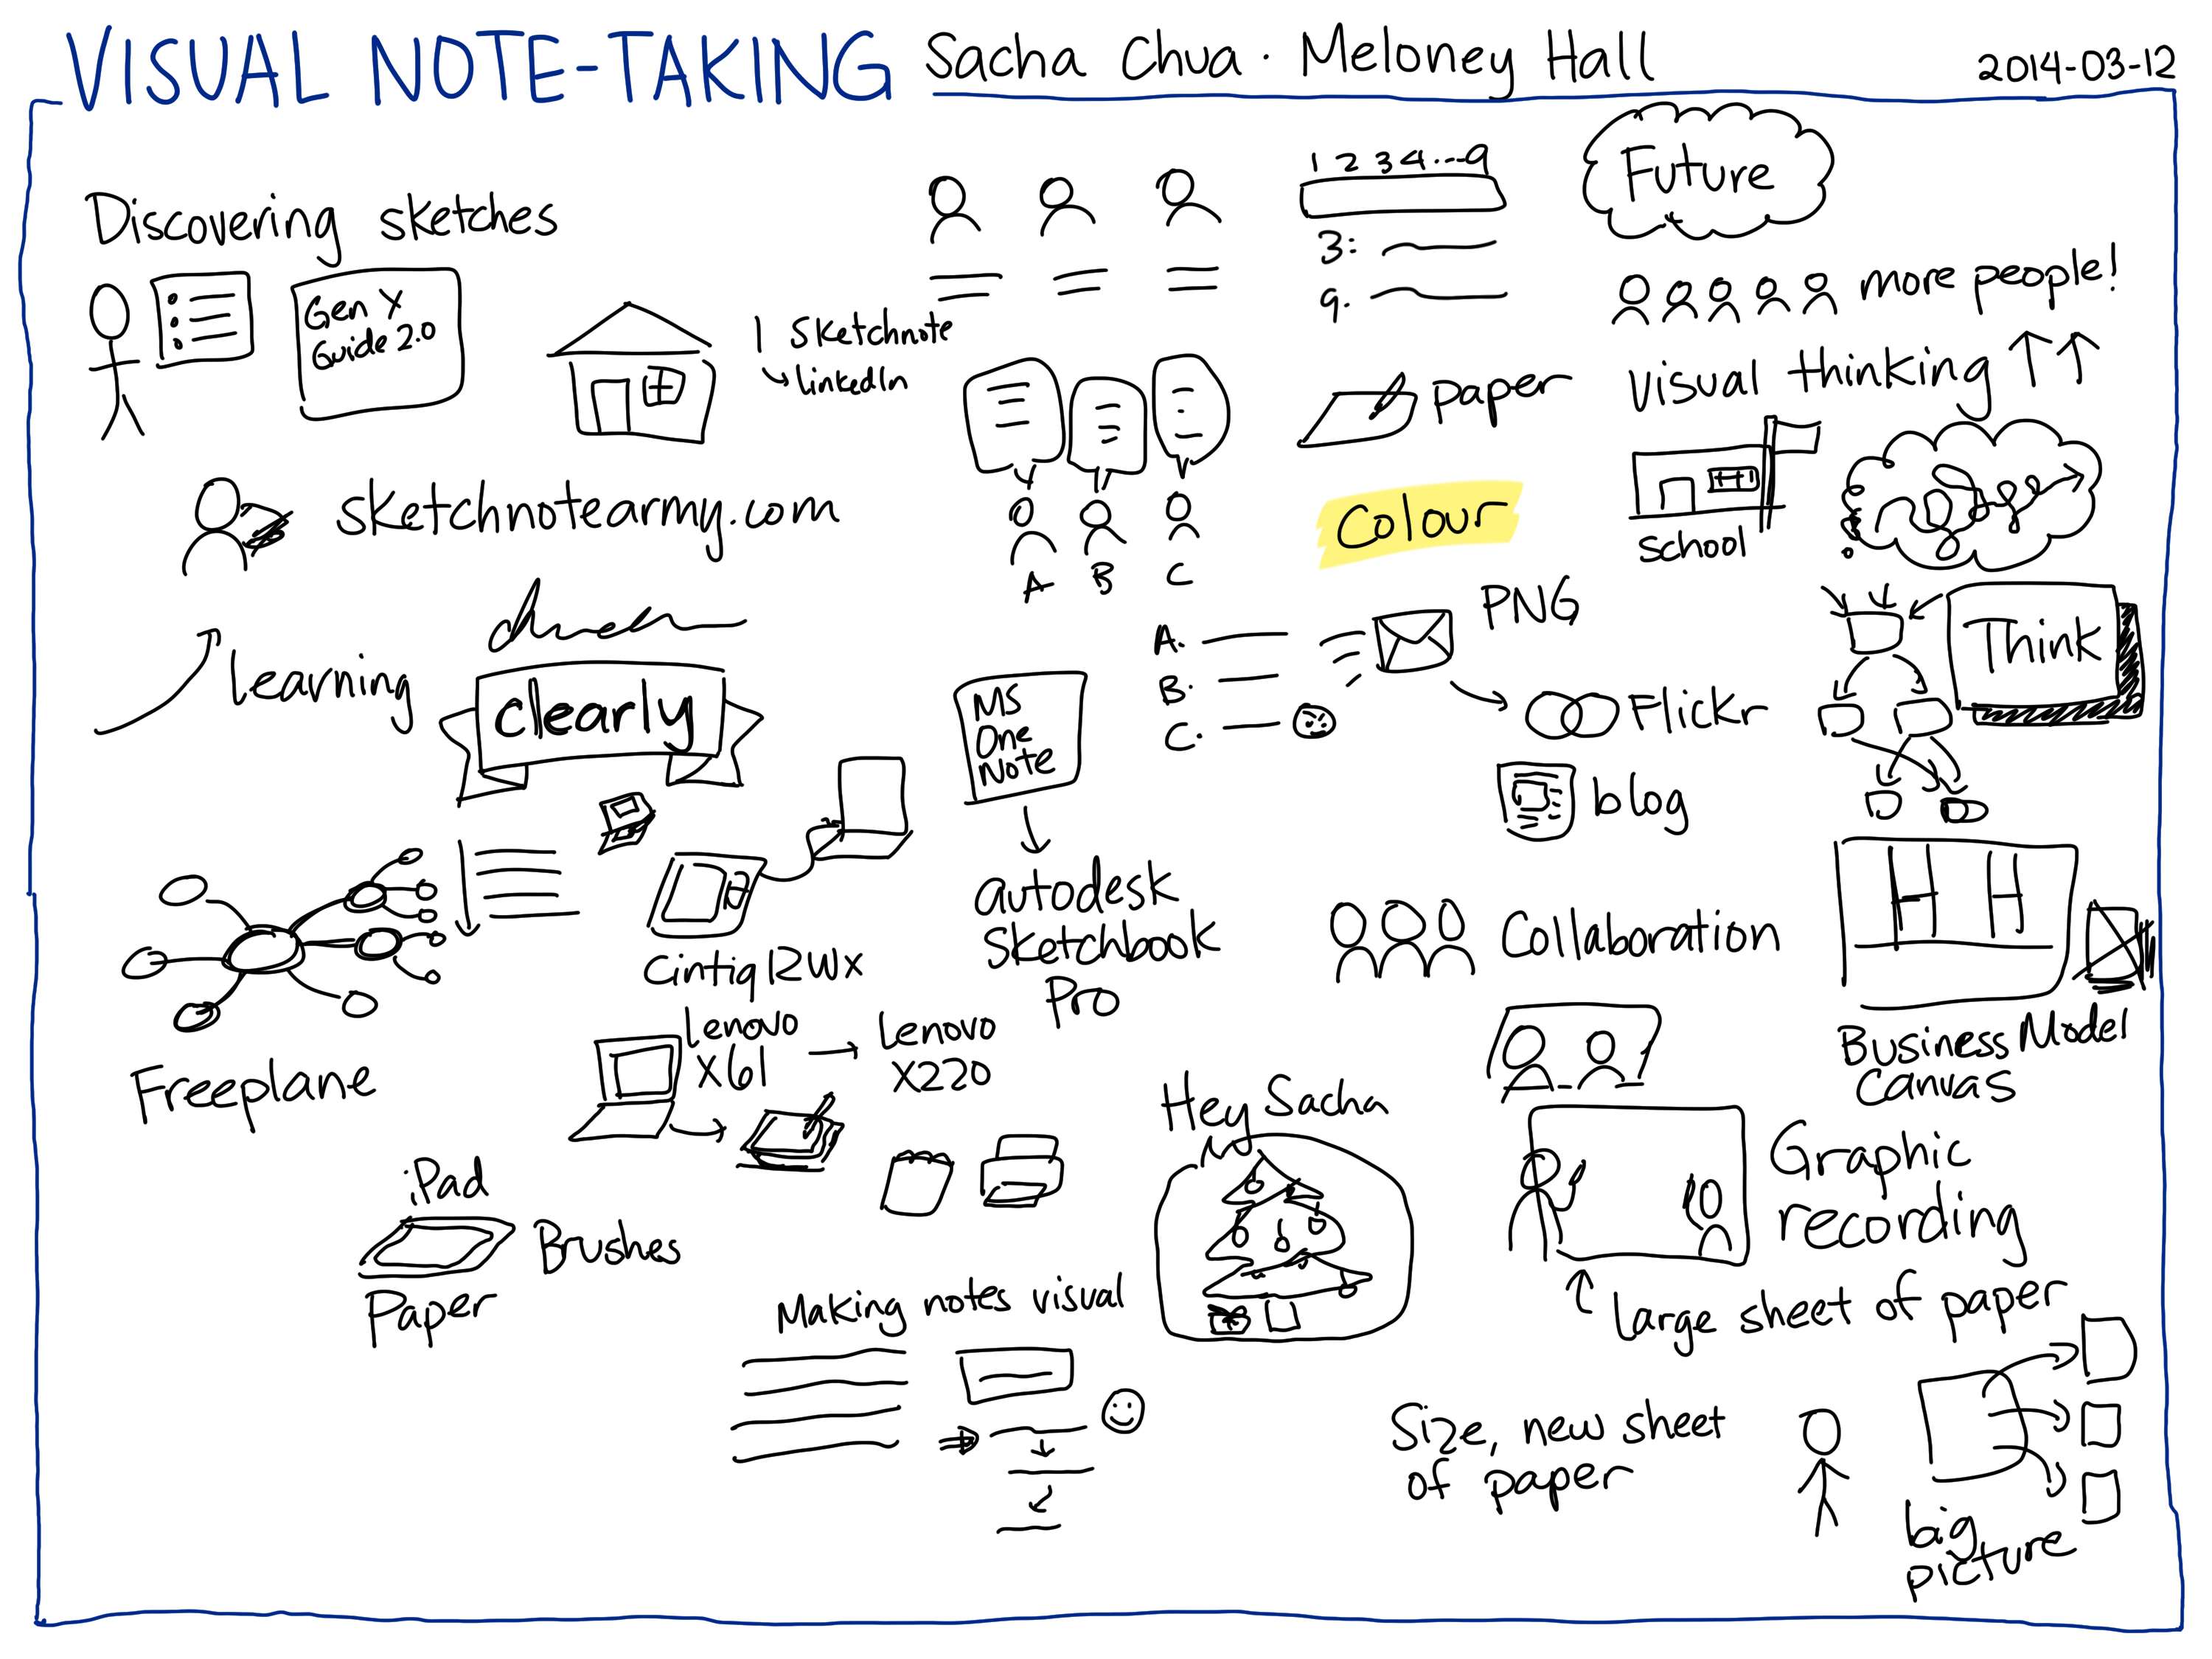 replay meloney hall interviewed me about sketchnoting 2014 03 12 visual note taking sacha chua meloney hall page